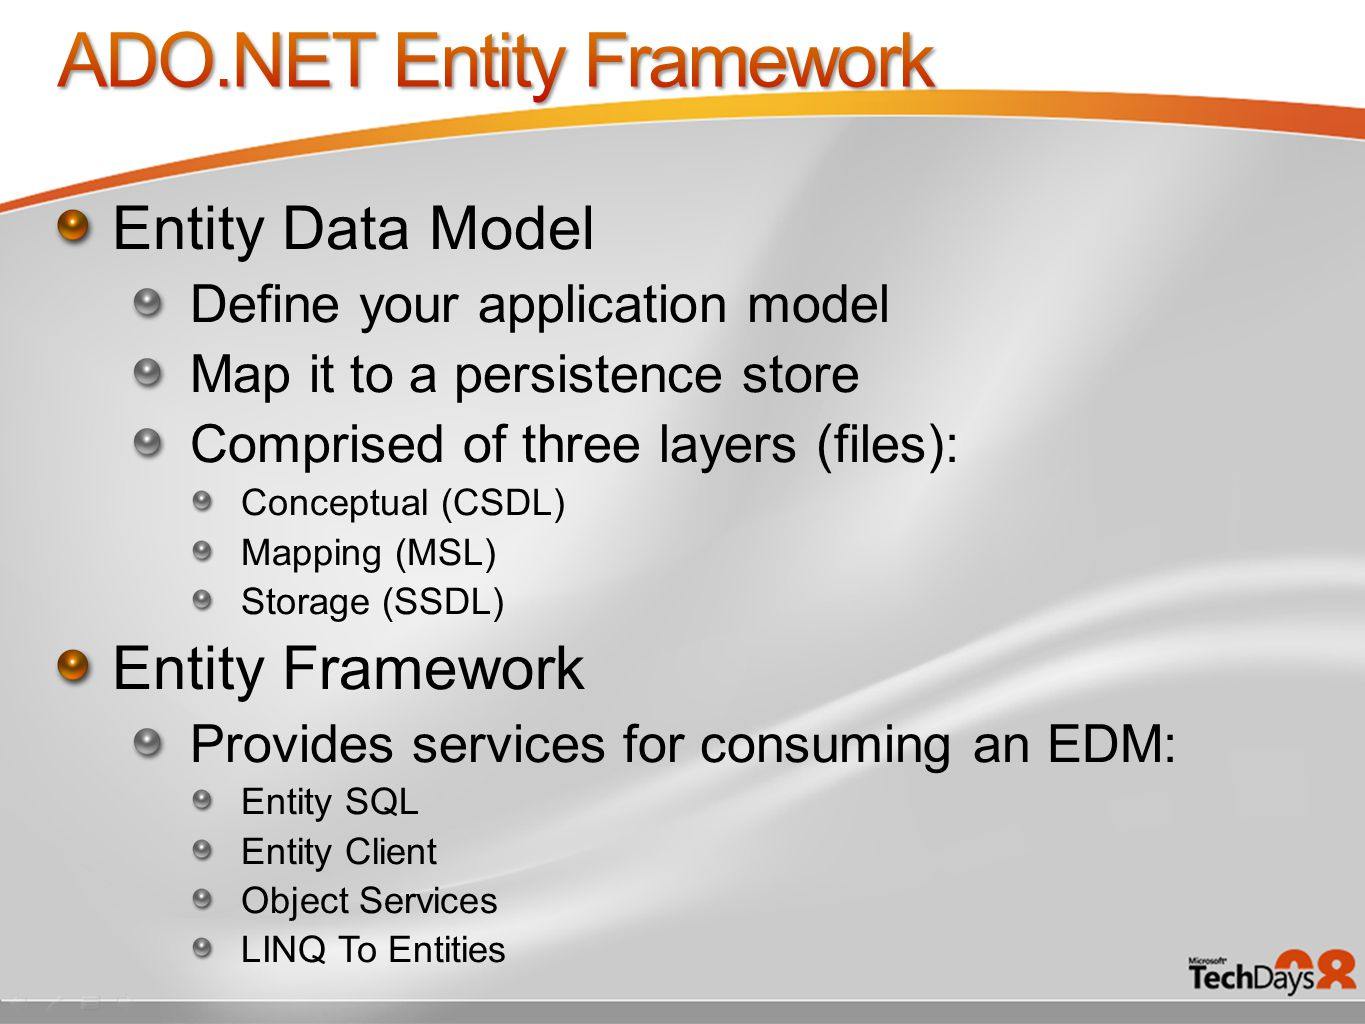 Entity Data Model Define your application model Map it to a persistence store Comprised of three layers (files): Conceptual (CSDL) Mapping (MSL) Storage (SSDL) Entity Framework Provides services for consuming an EDM: Entity SQL Entity Client Object Services LINQ To Entities